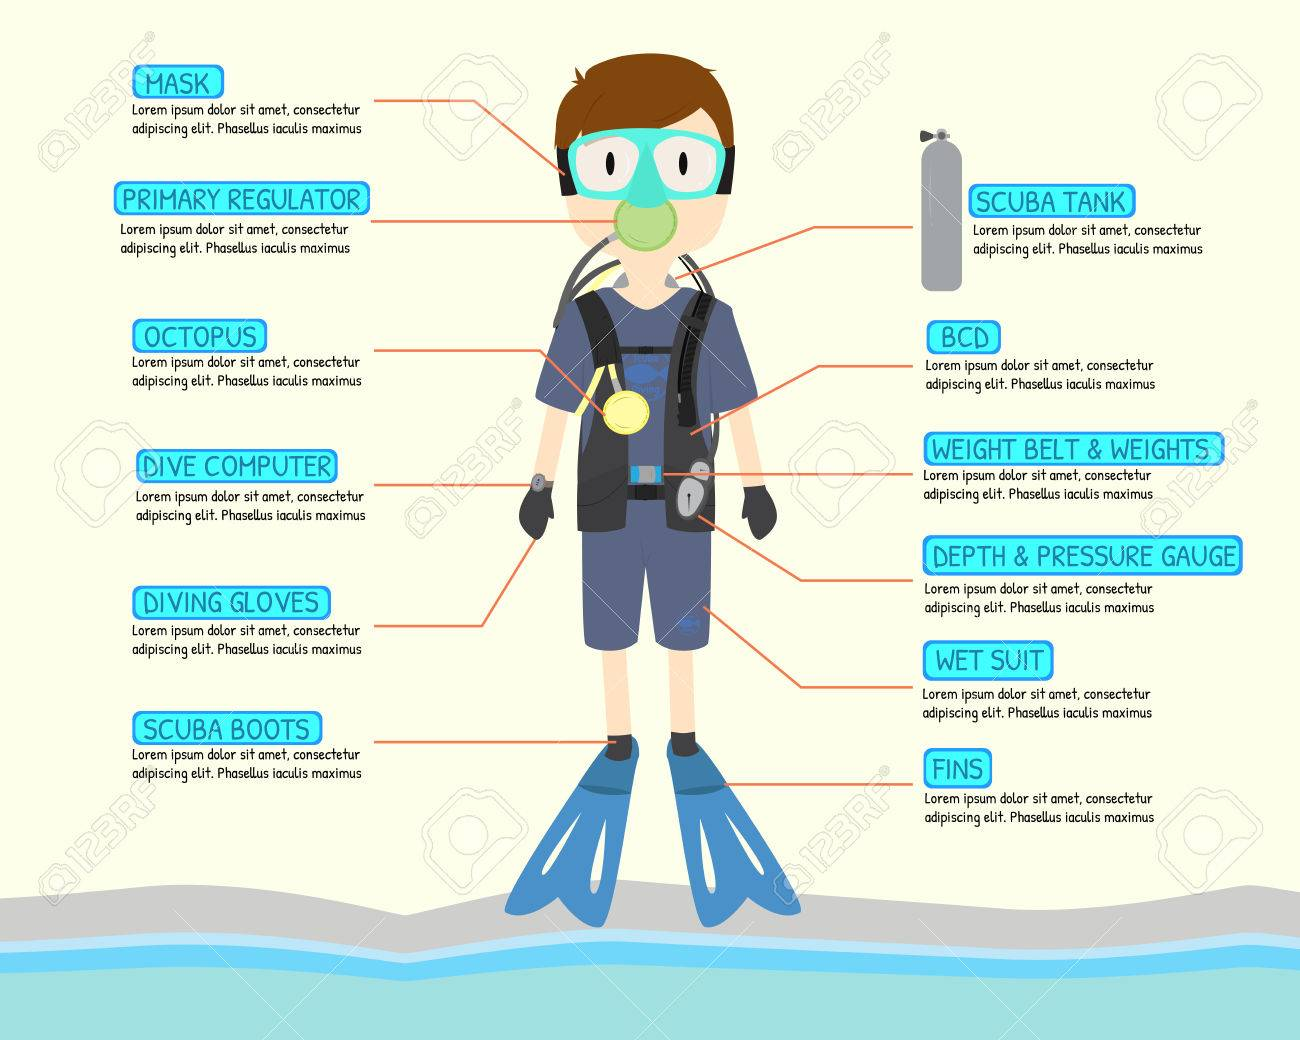 Scuba Driver Cartoon Character With Scuba Equipment Infographic